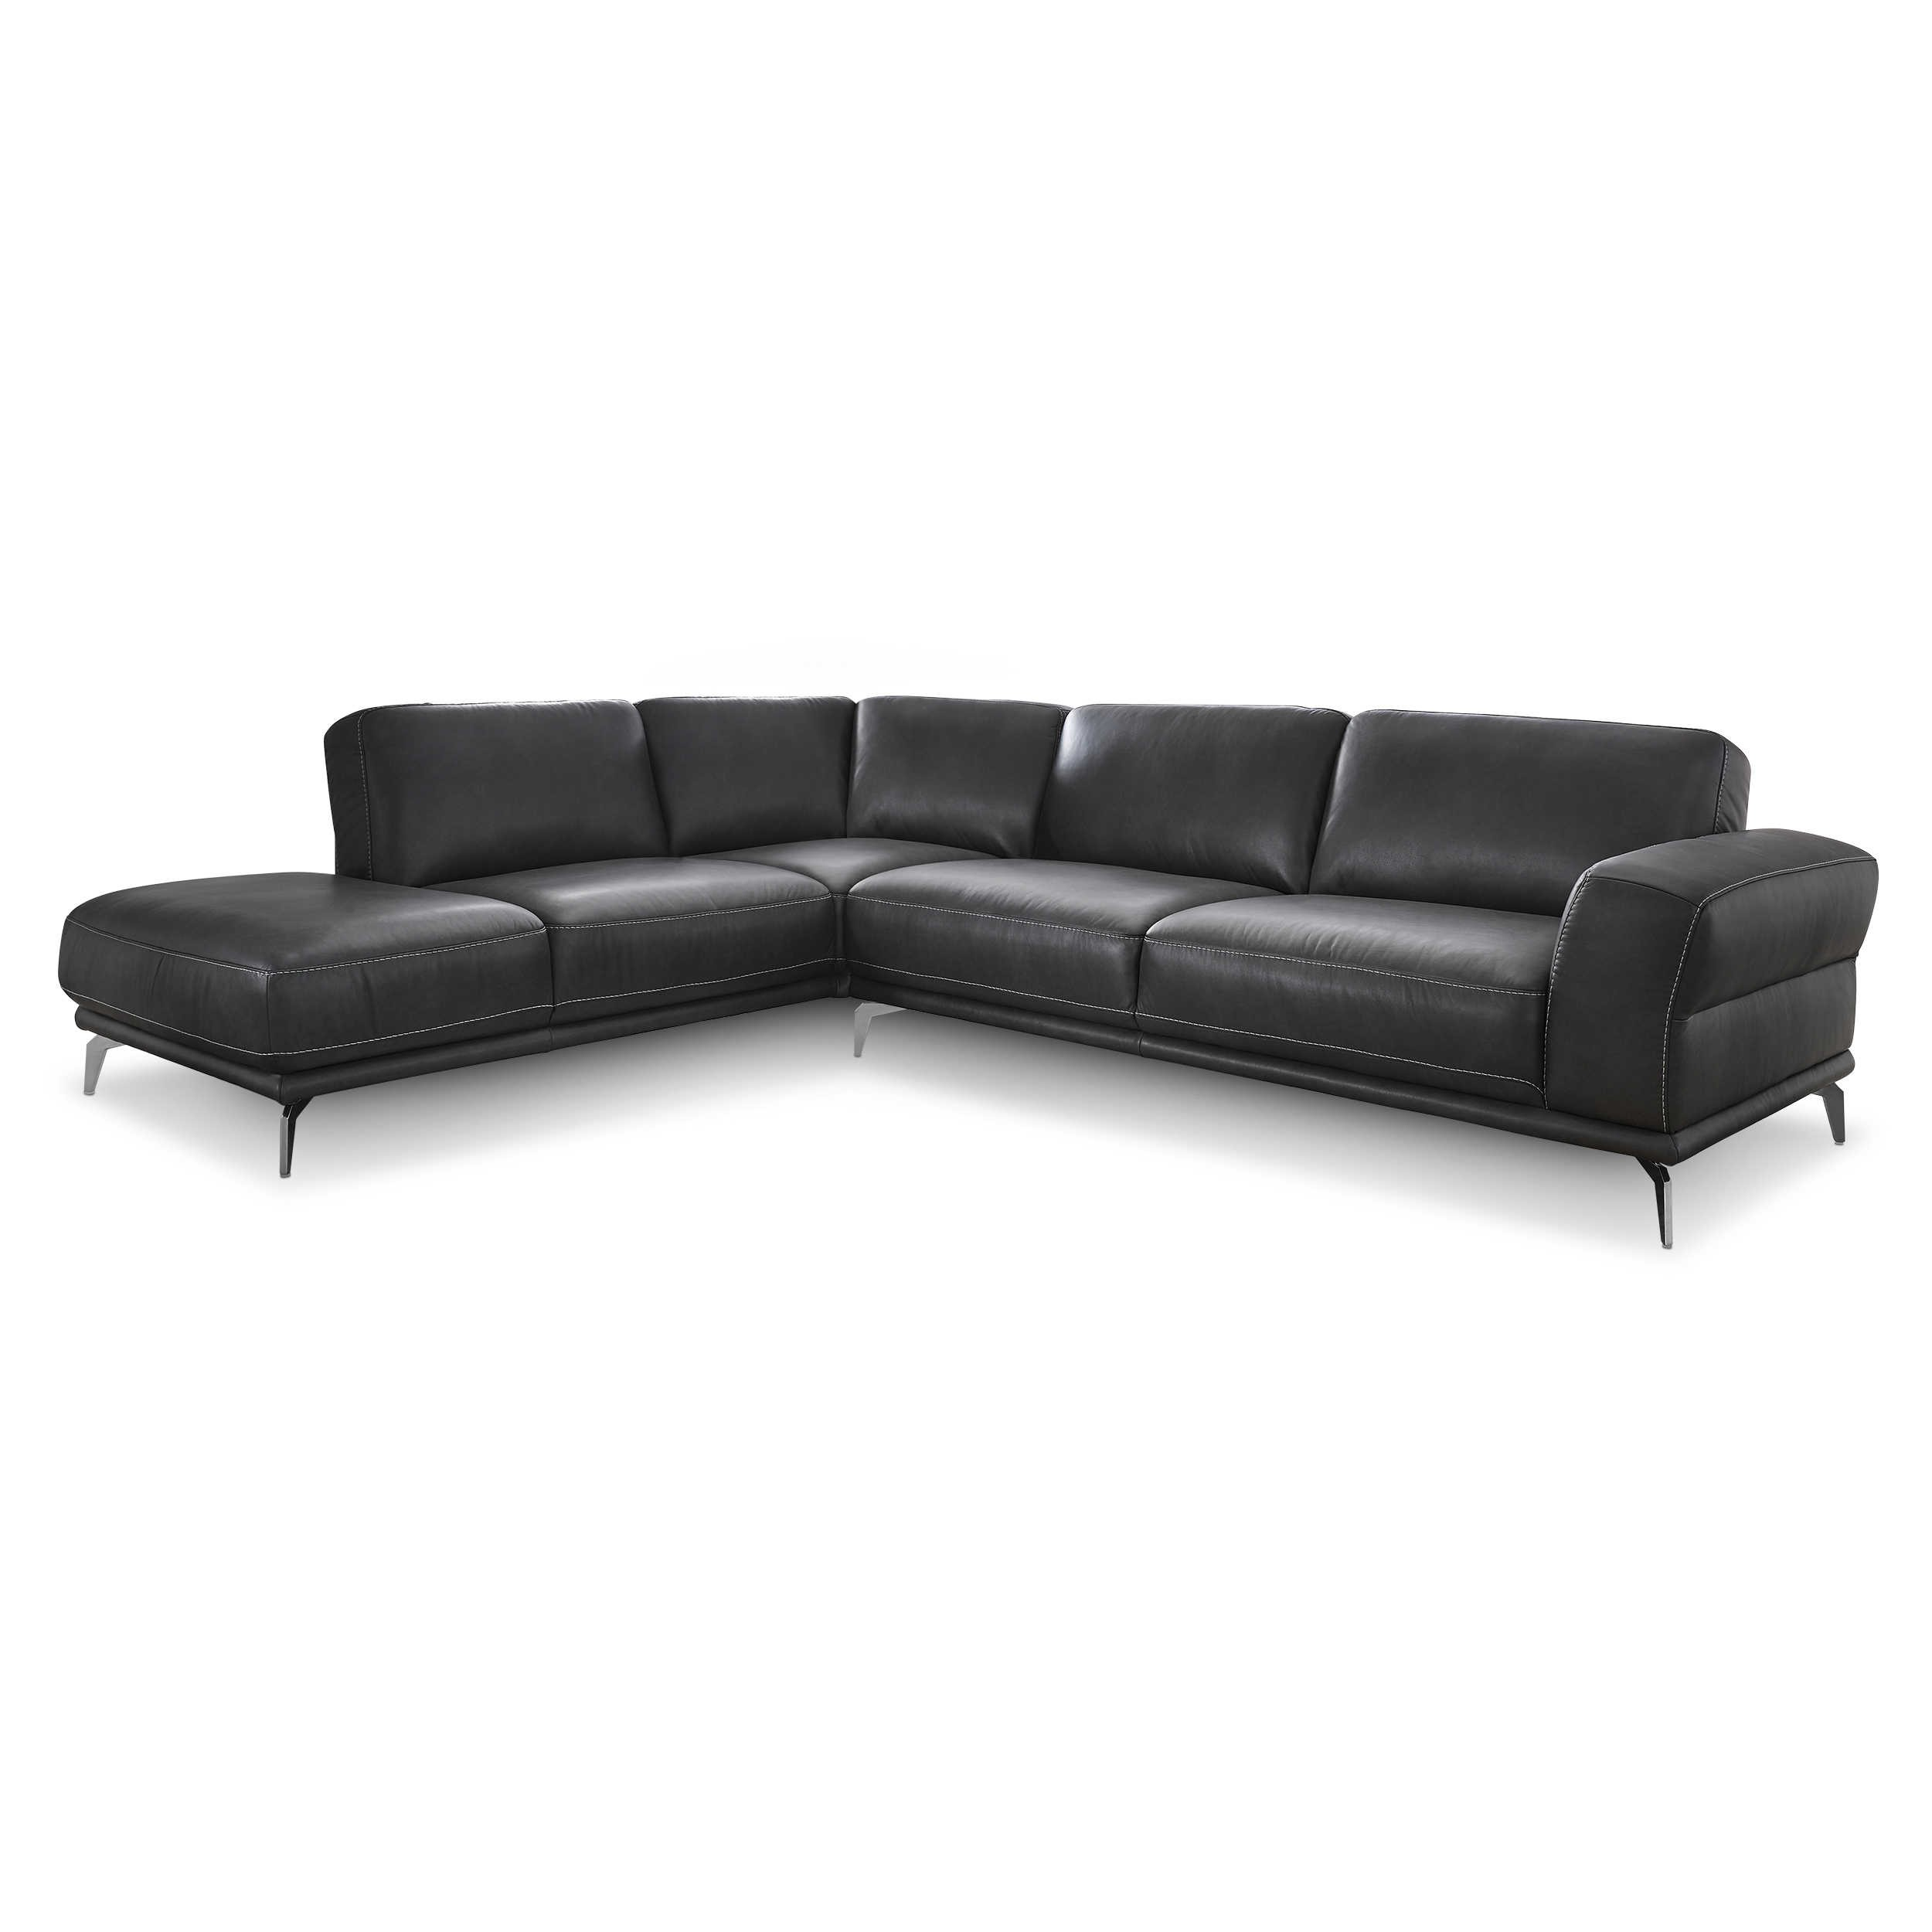 willi schillig ecksofa 24250 montanaa anthrazit leder online kaufen bei woonio. Black Bedroom Furniture Sets. Home Design Ideas